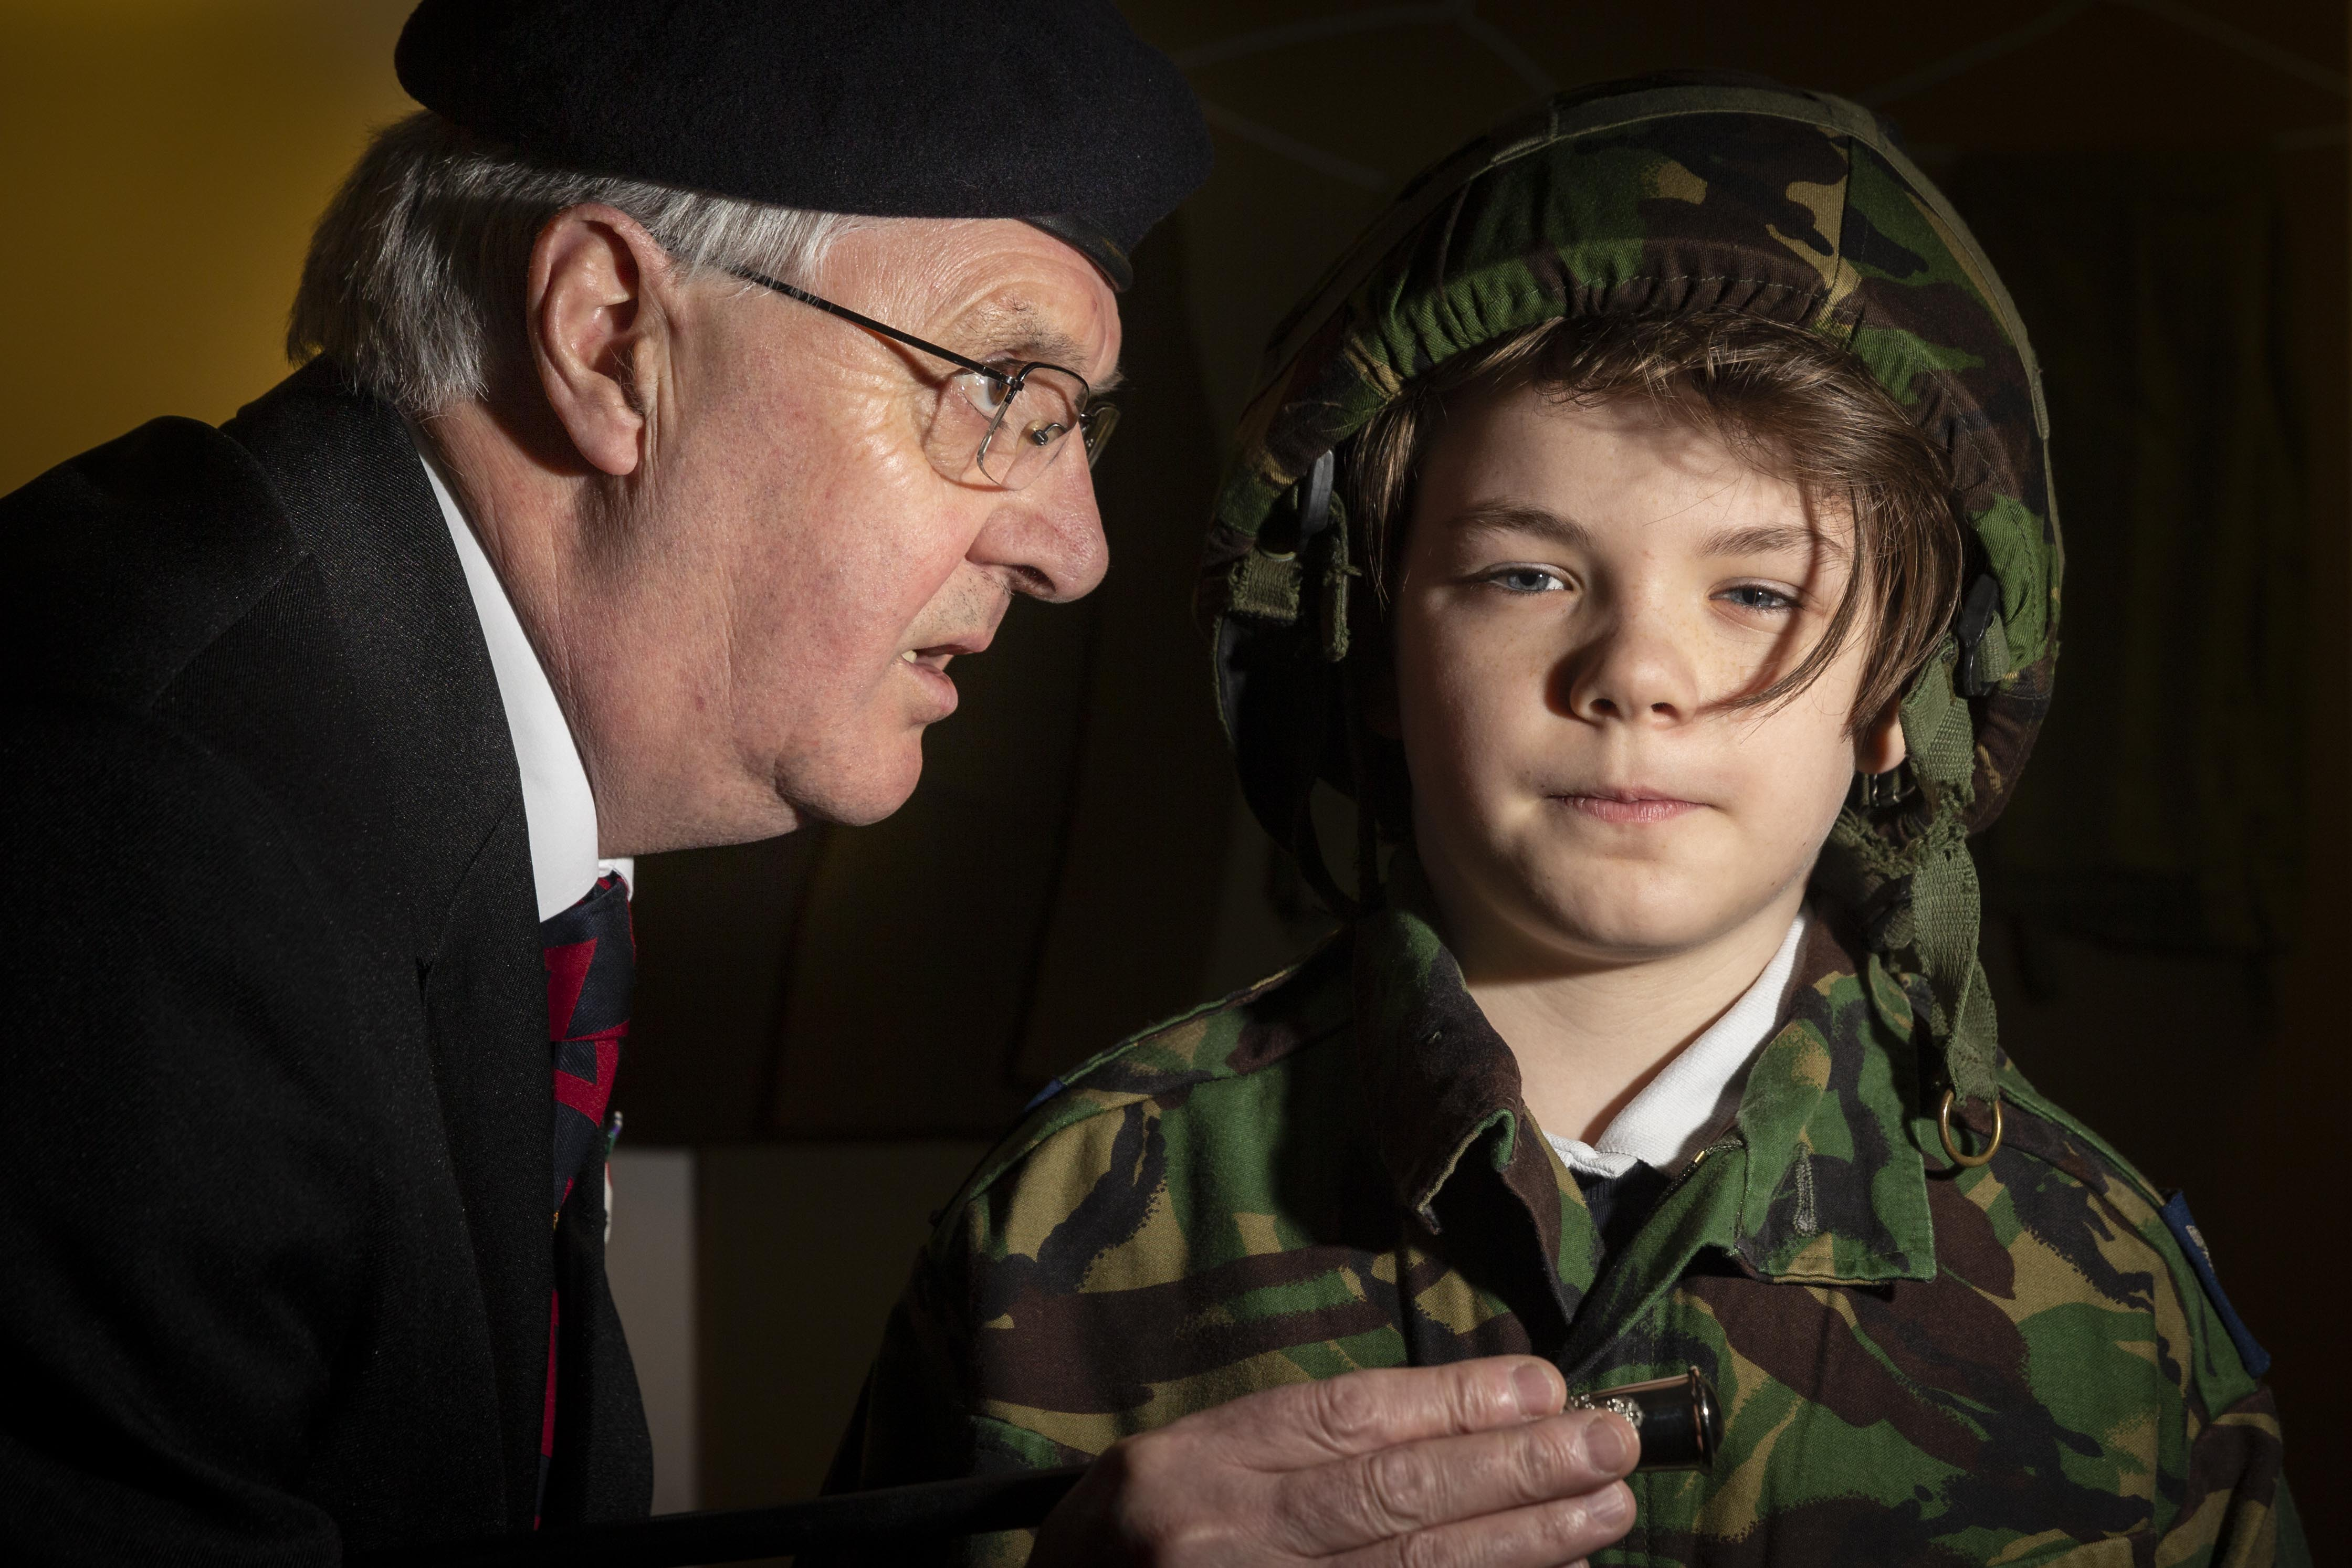 A P7 pupil from Banchory primary school gets put through his paces by a Banchory British Legion member and veteran during a WW2 lesson in Banchory's museum.